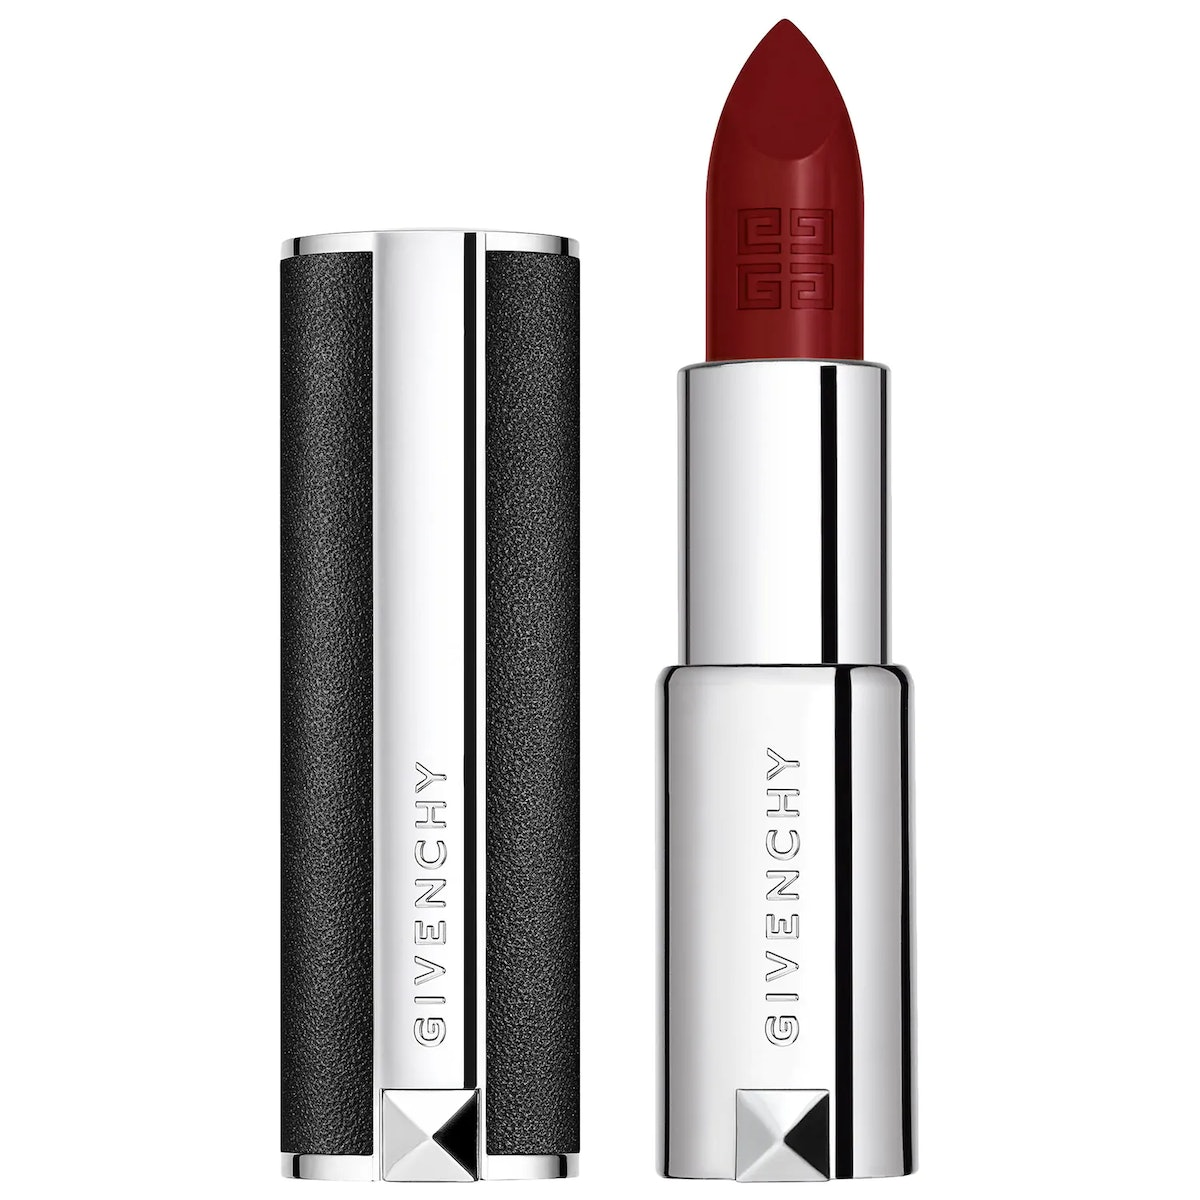 Le Rouge Lipstick in Grenet Volontaire